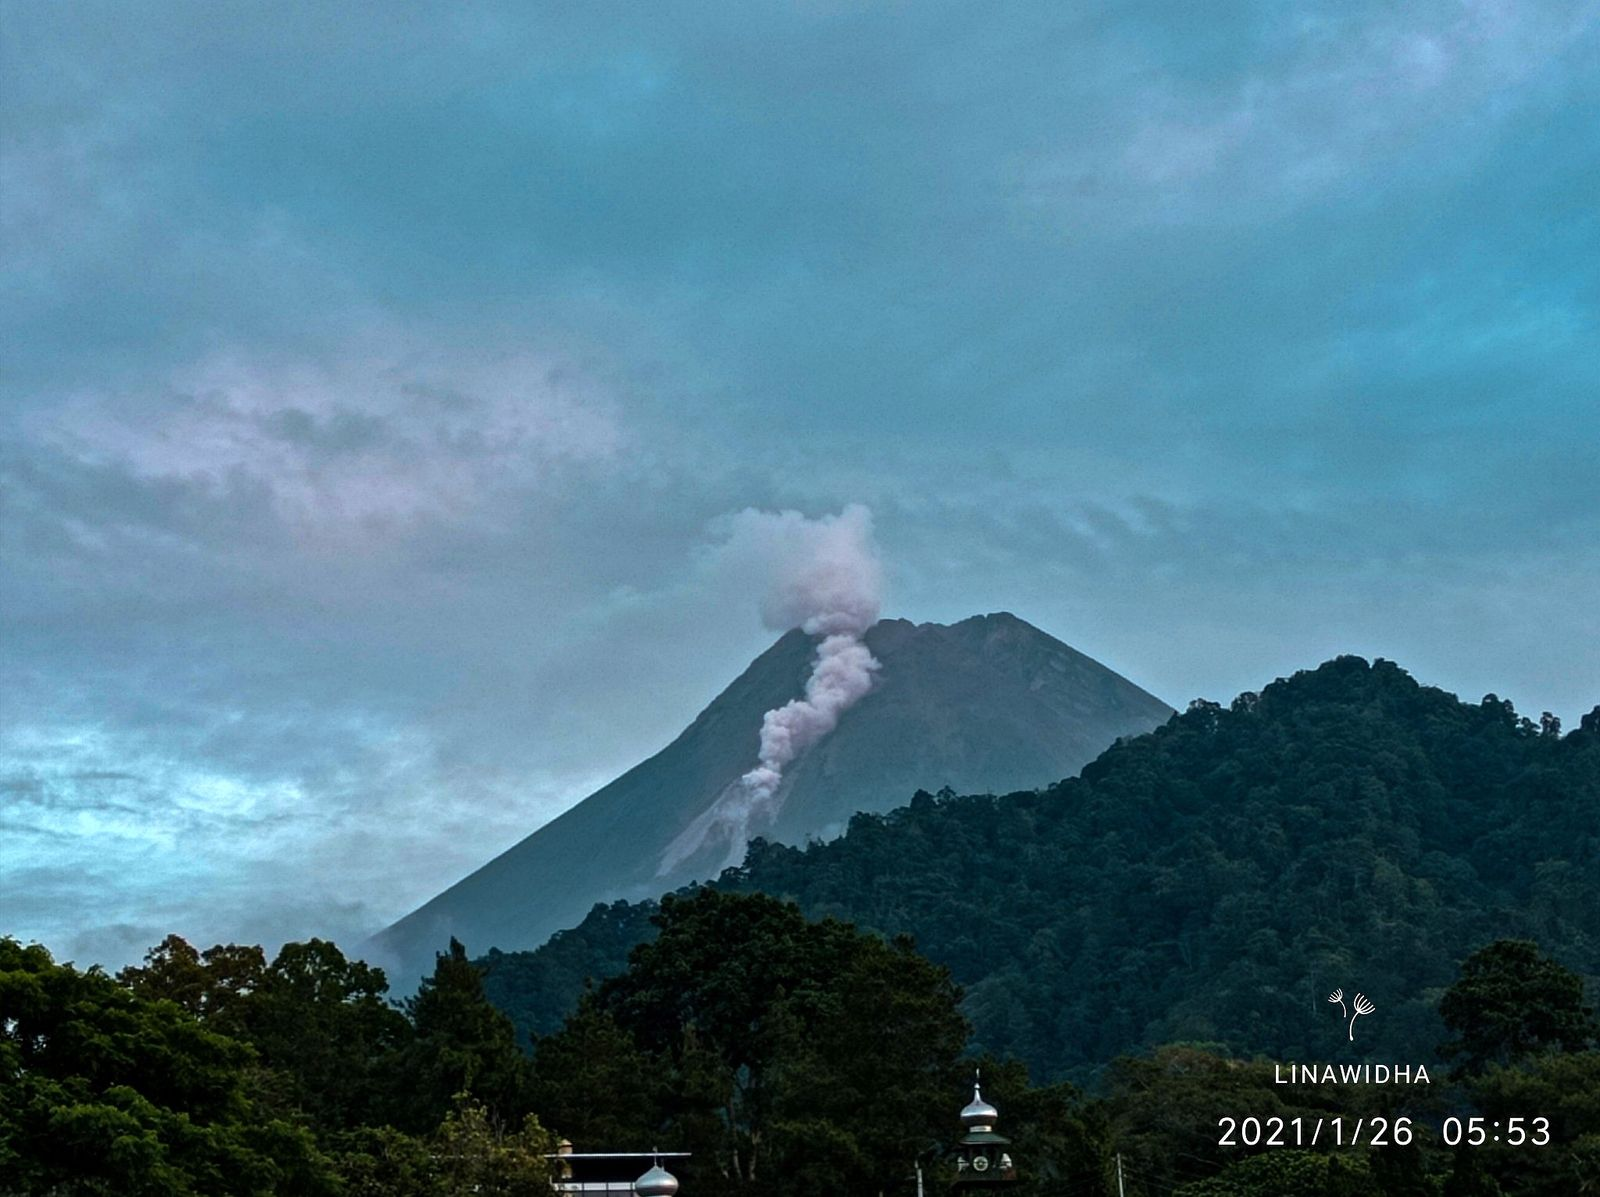 Merapi - 01.26.2021 / 05h53 WIB - photo linawidha / Twitter and in the morning - photo News.CN